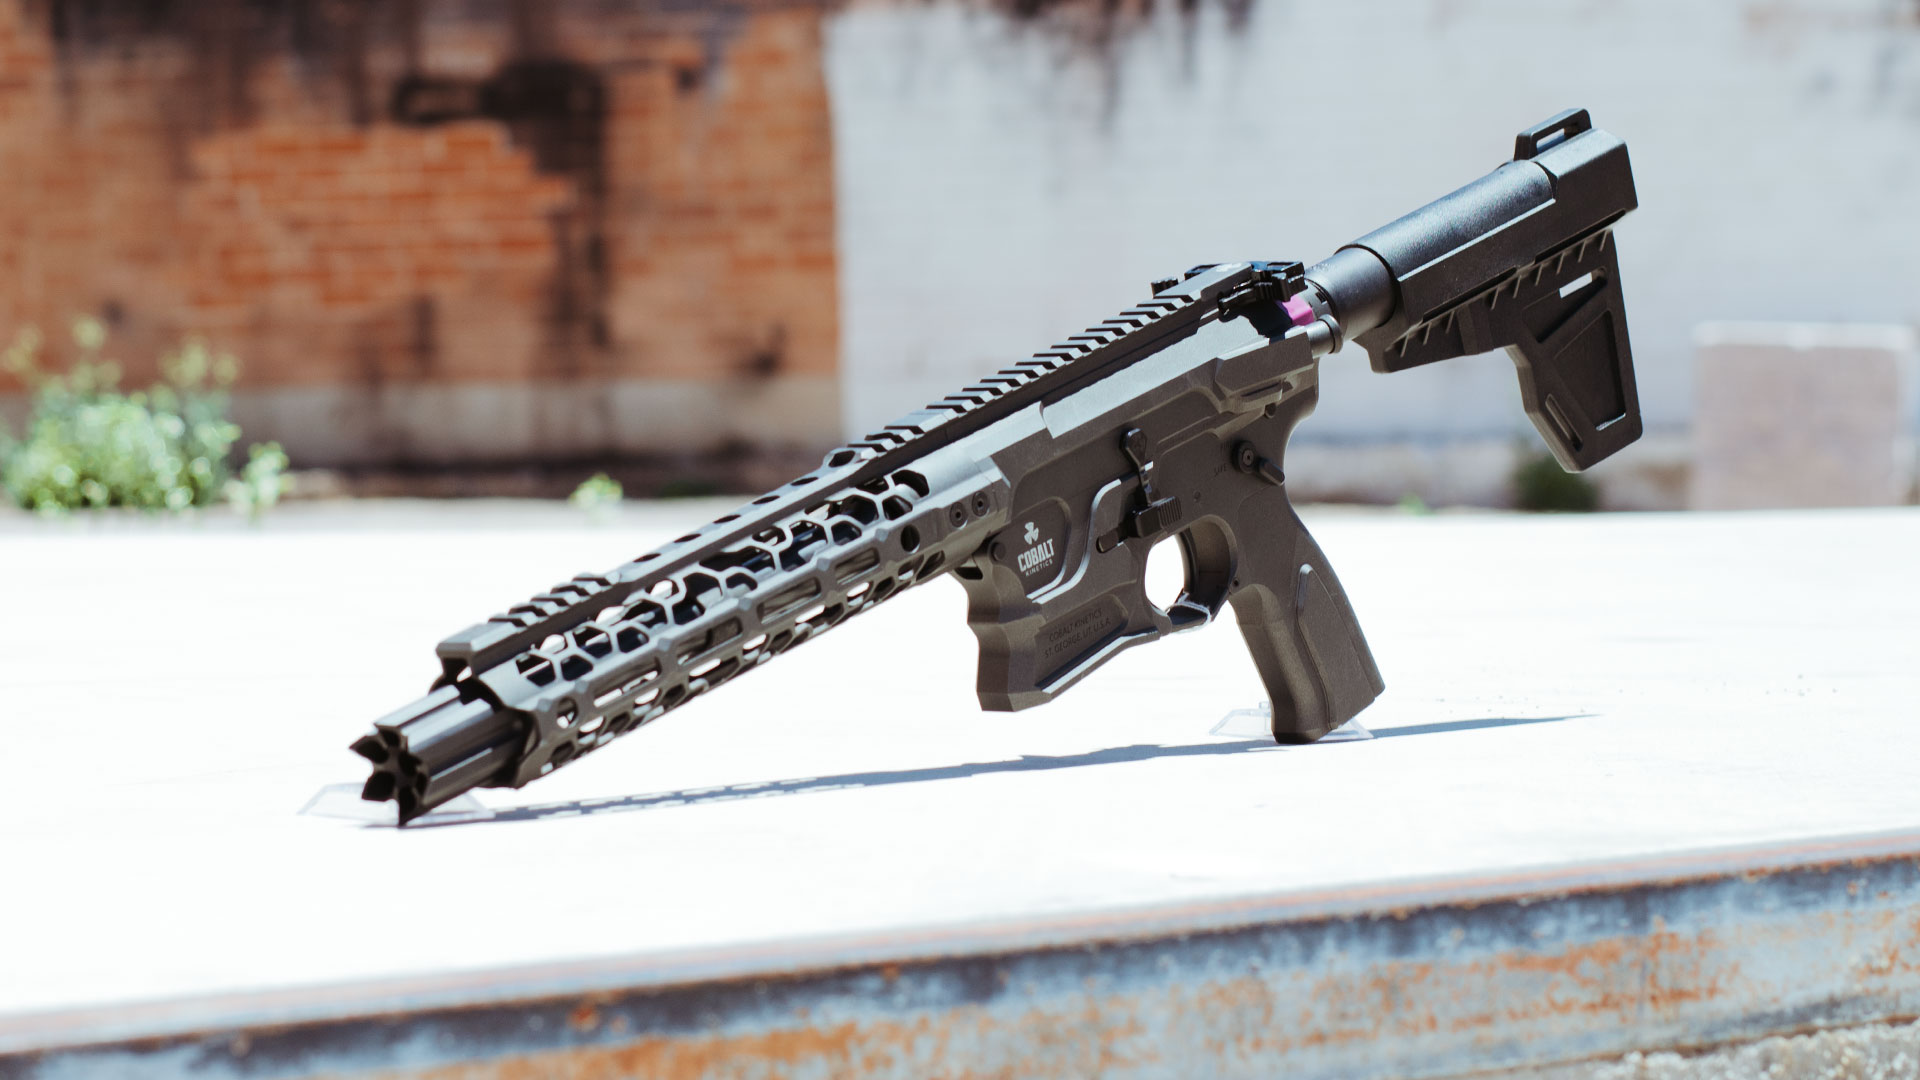 An NFA-controlled firearm that you can purchase at our gun shop